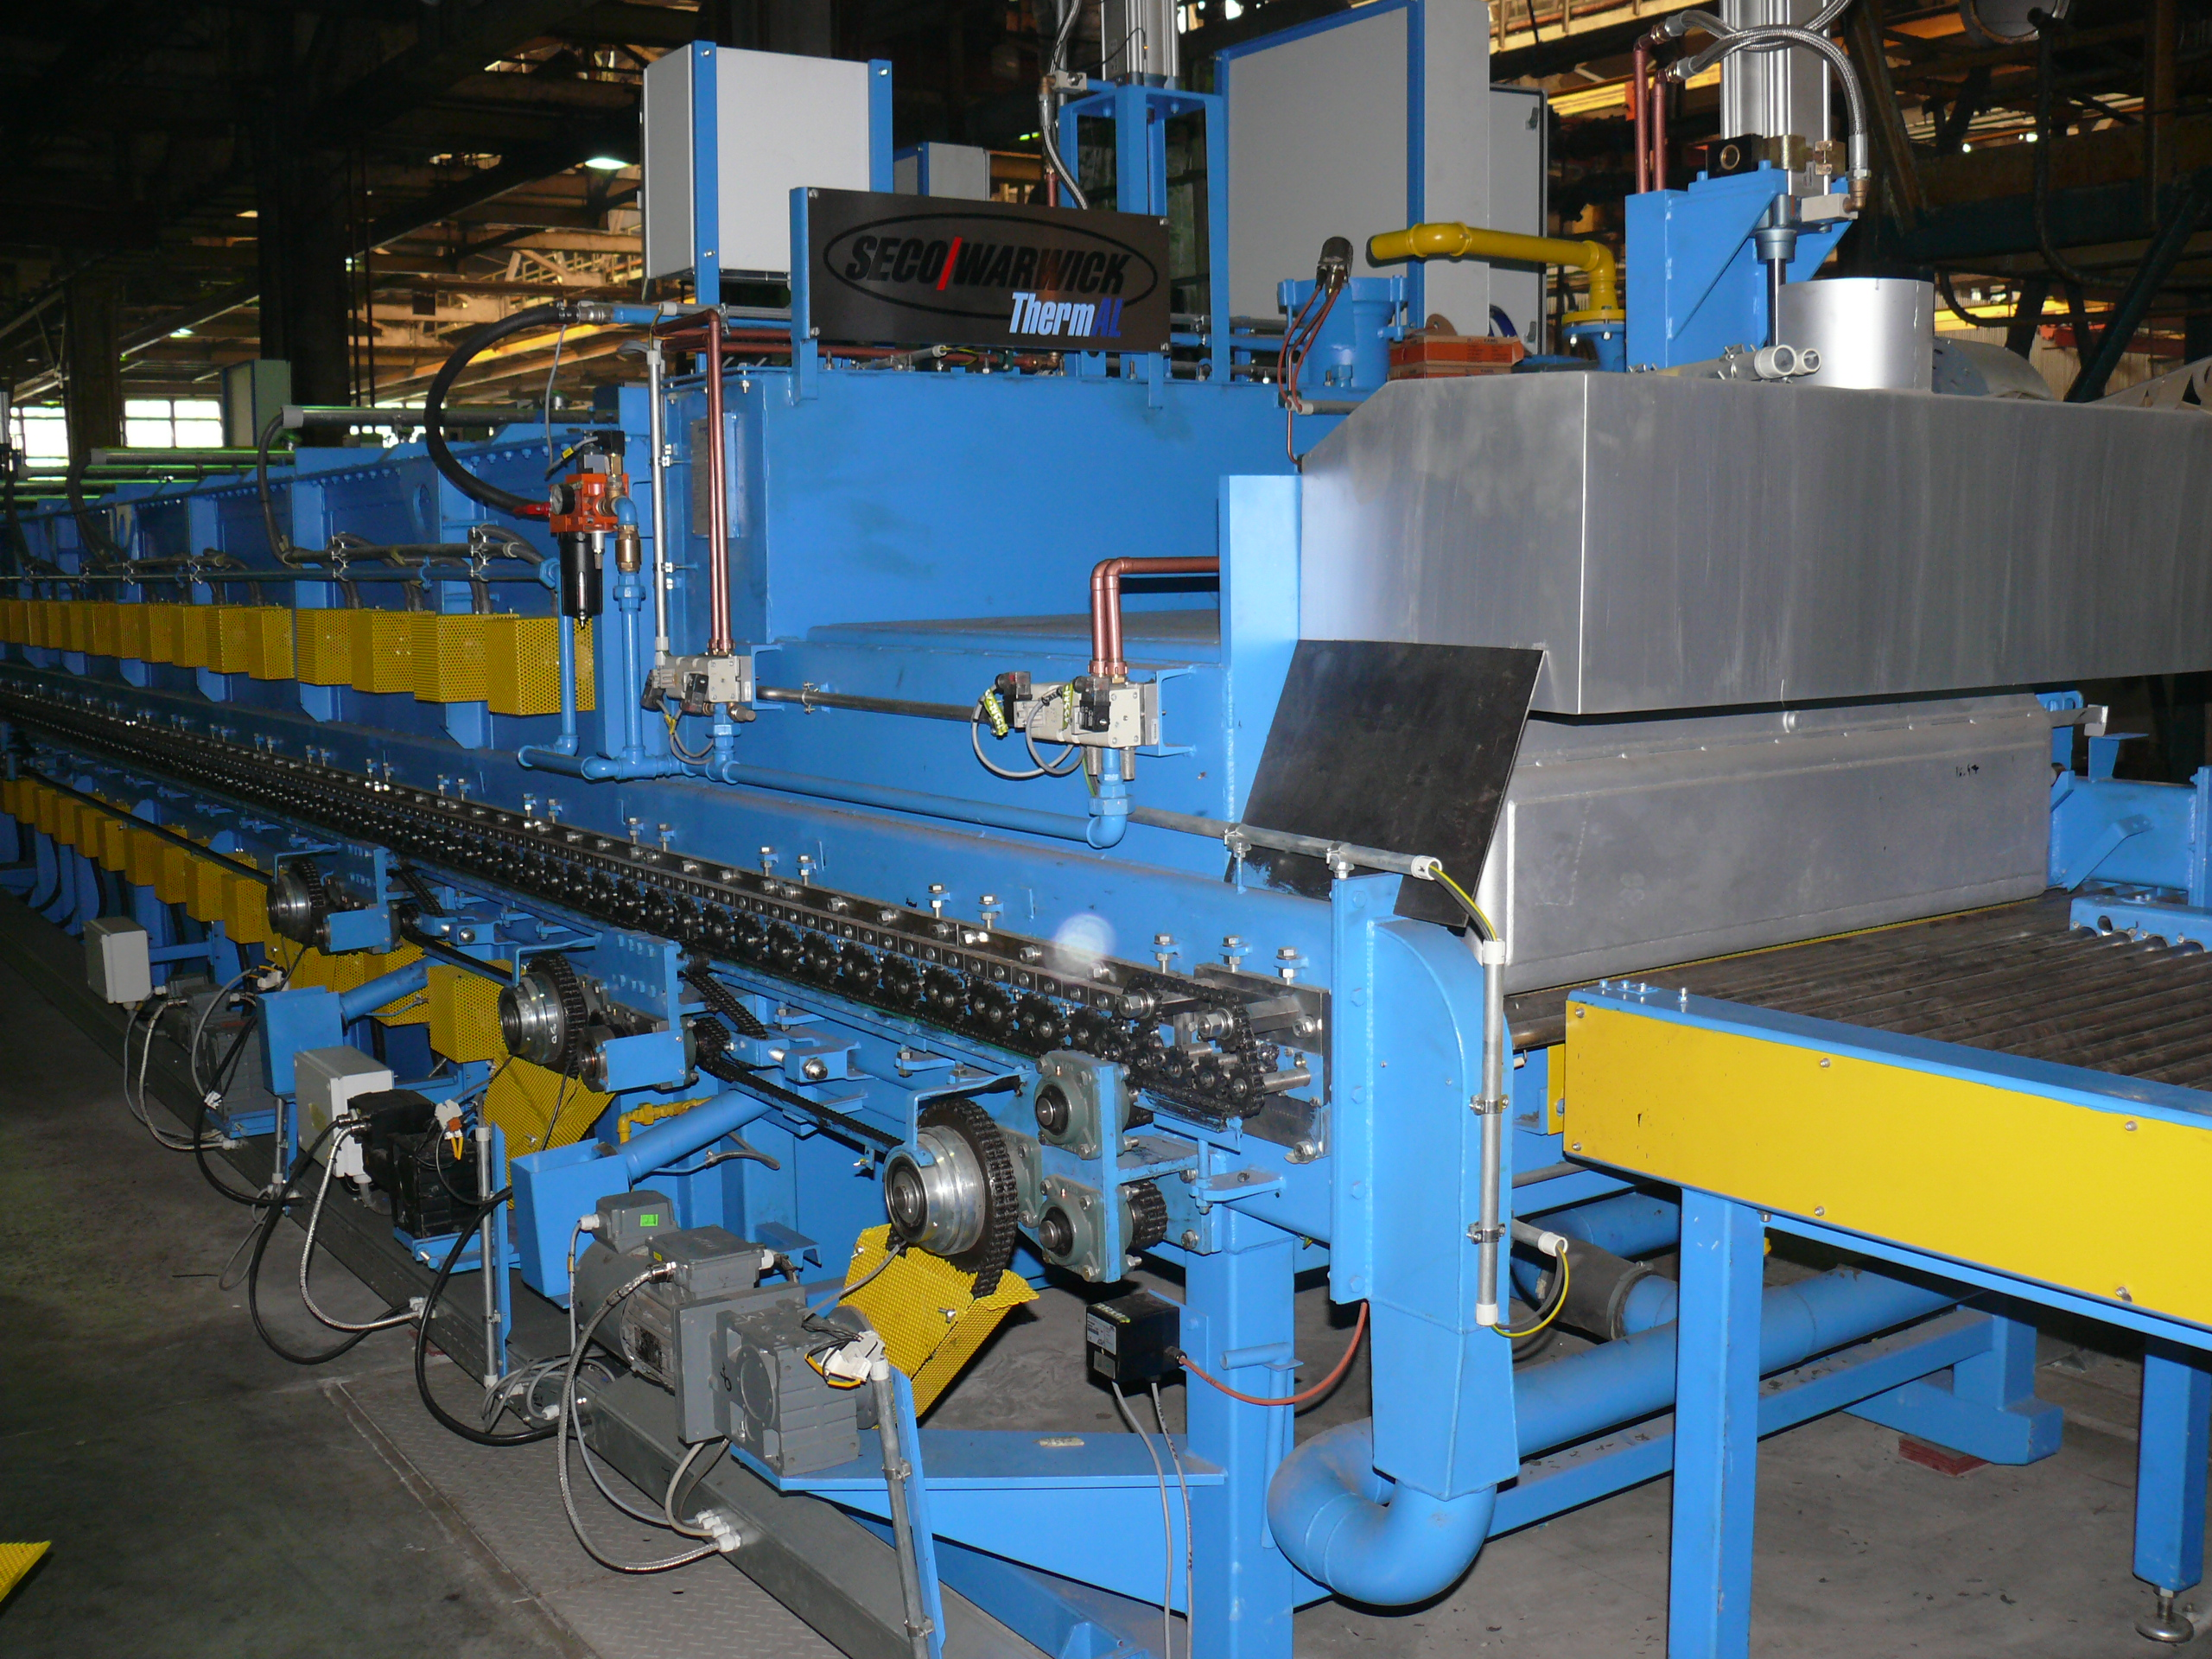 Roller hearth furnace processing line in Ukraine commissioned